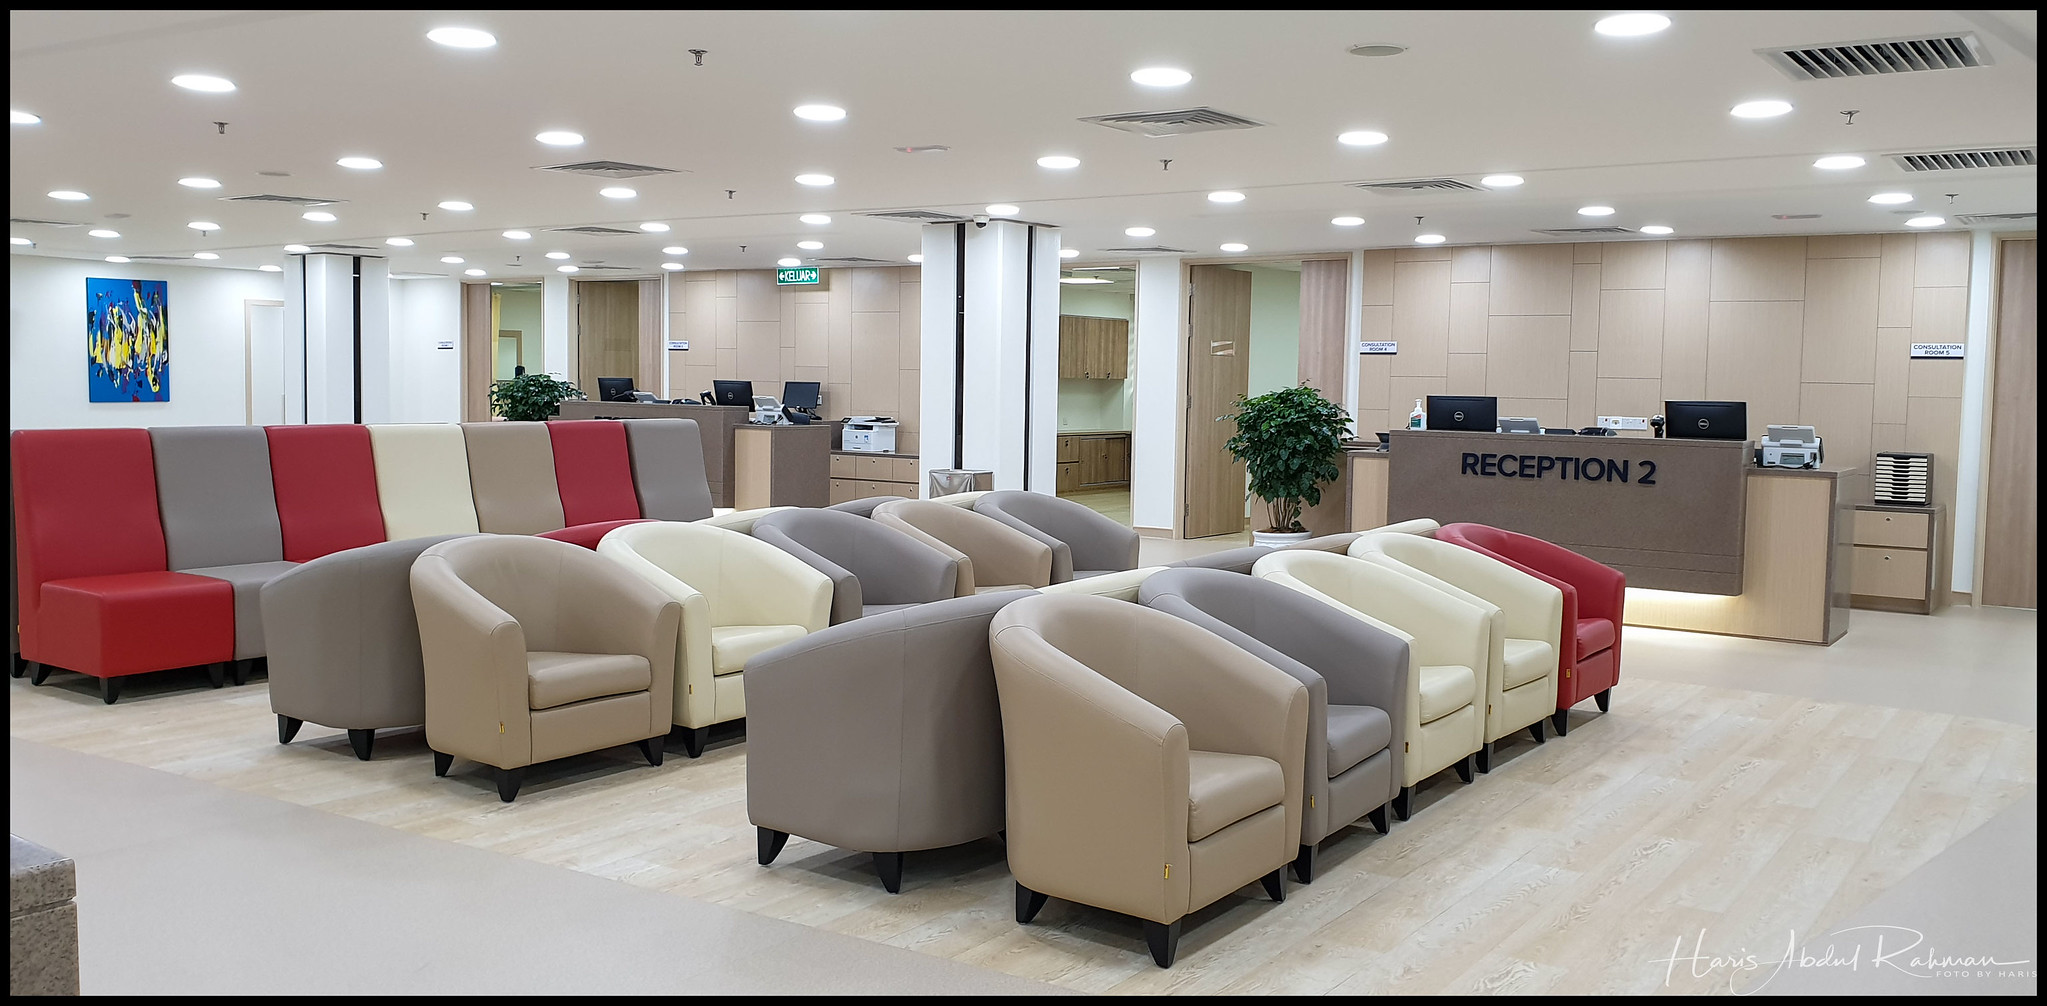 Comfortable seating area for patients